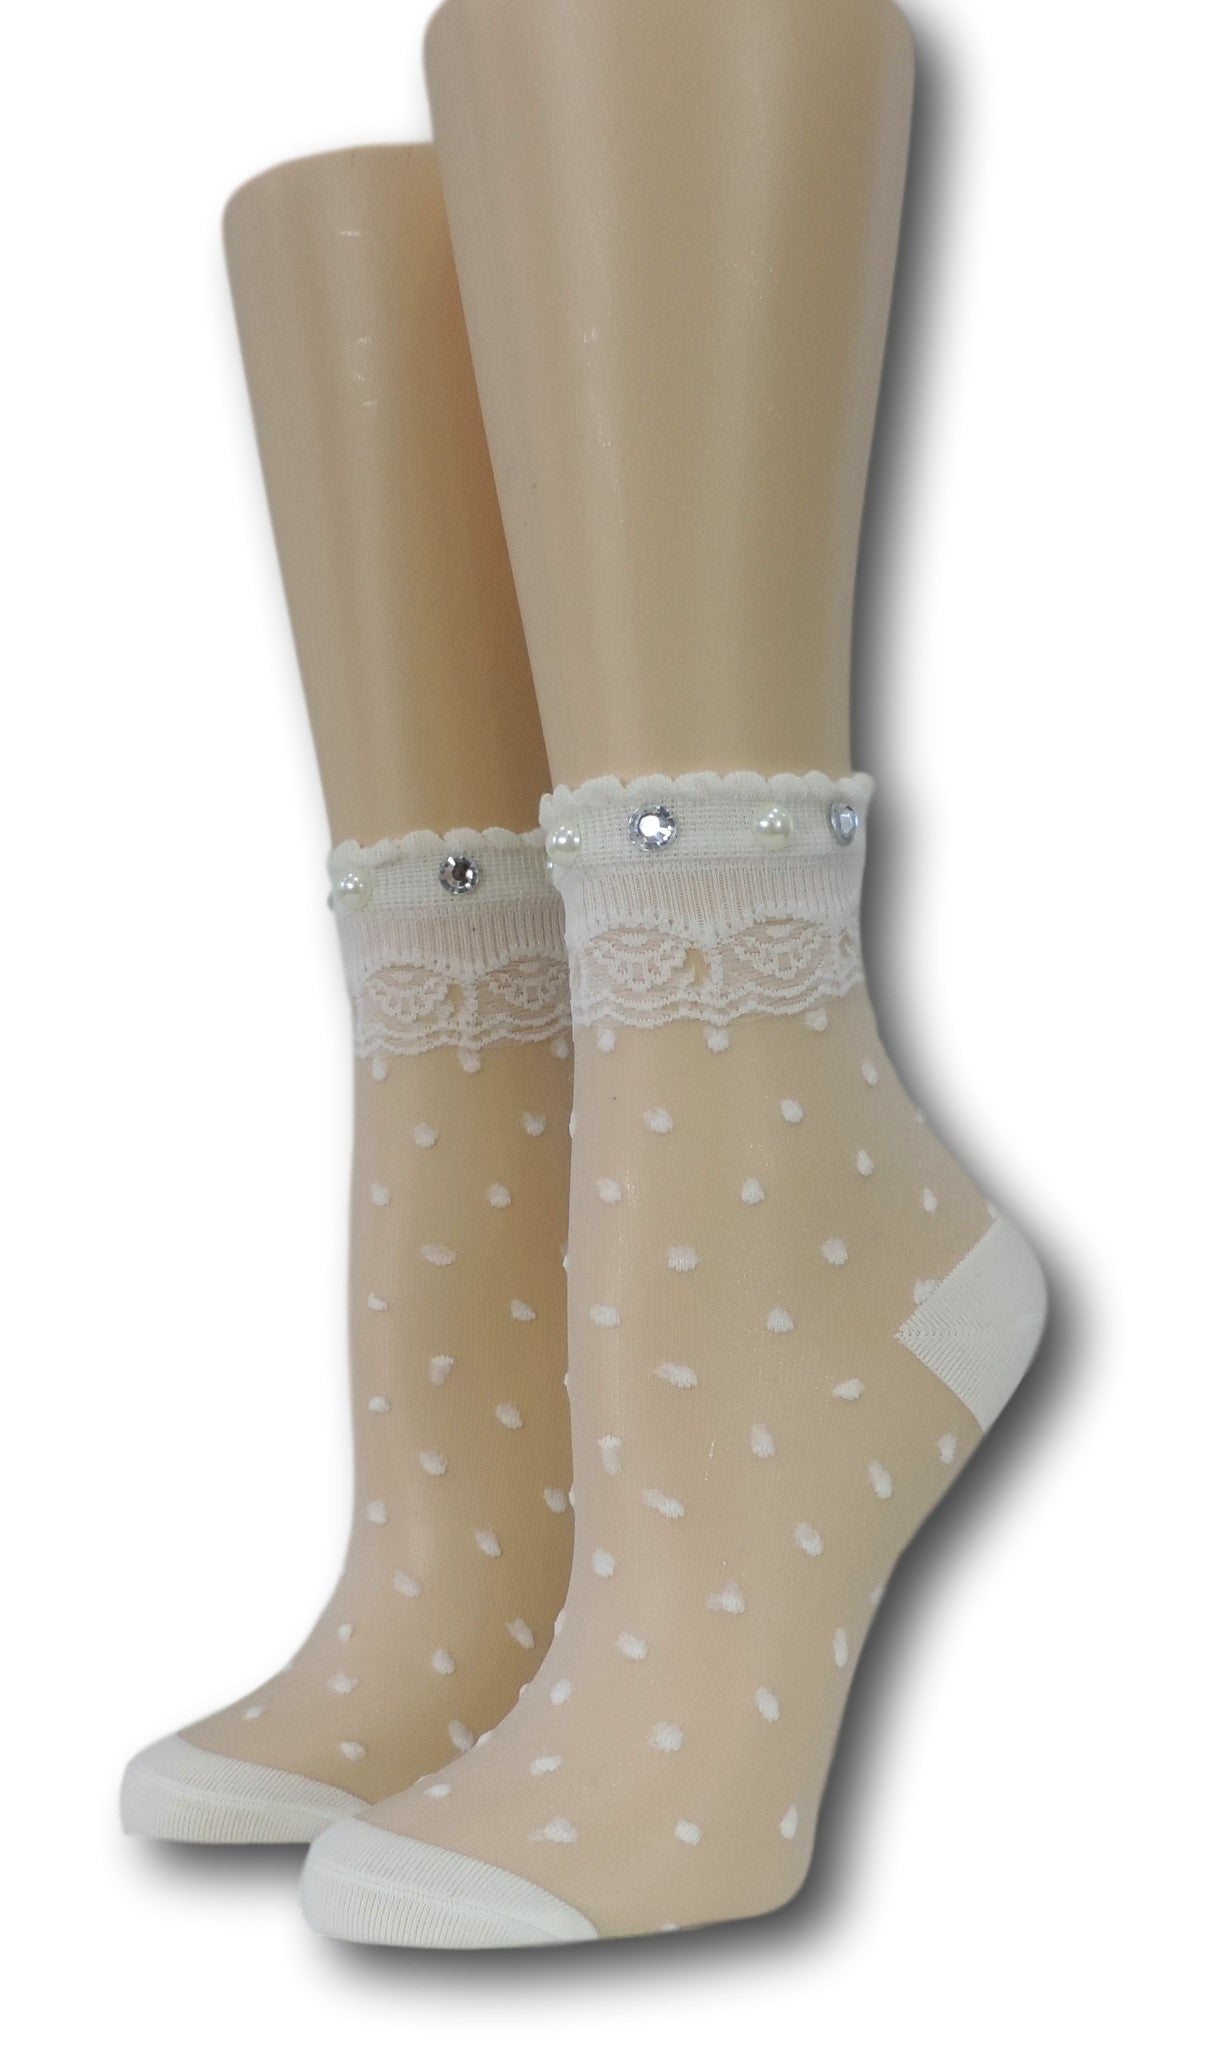 White Royal Dotted Sheer Socks with beads